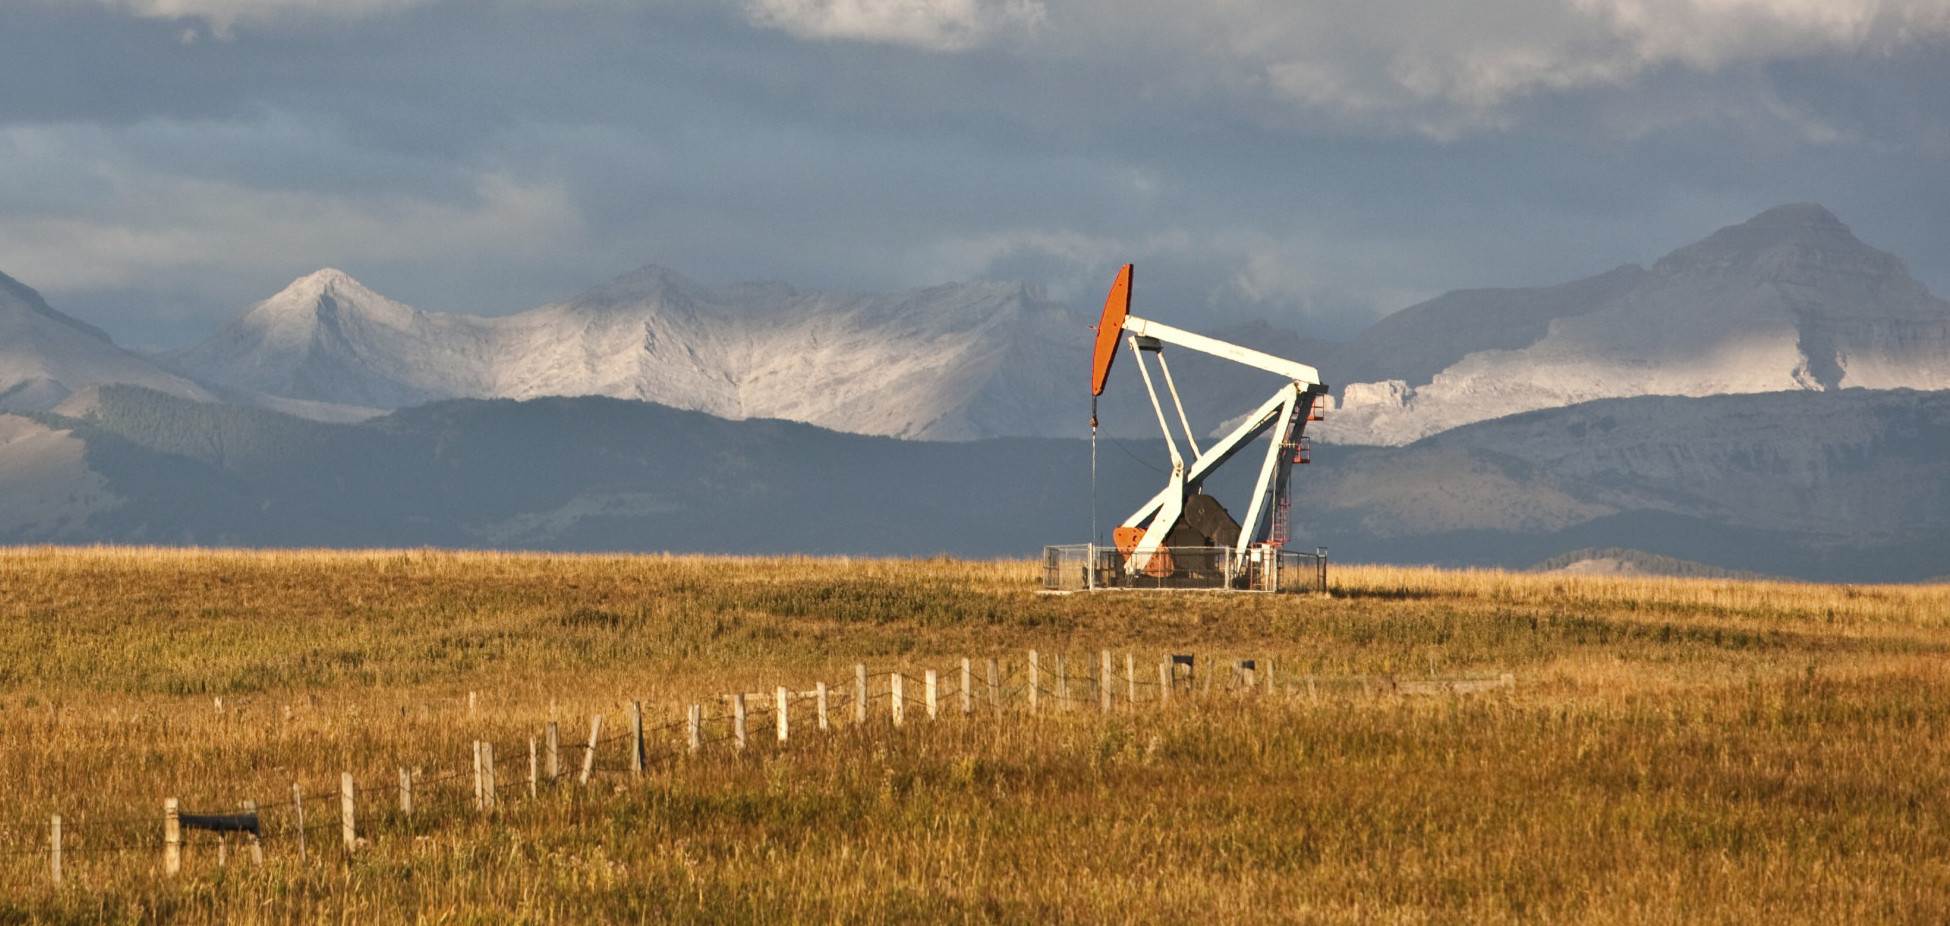 Alberta: unpaid taxes from oil and gas leaving municipalities unsettled